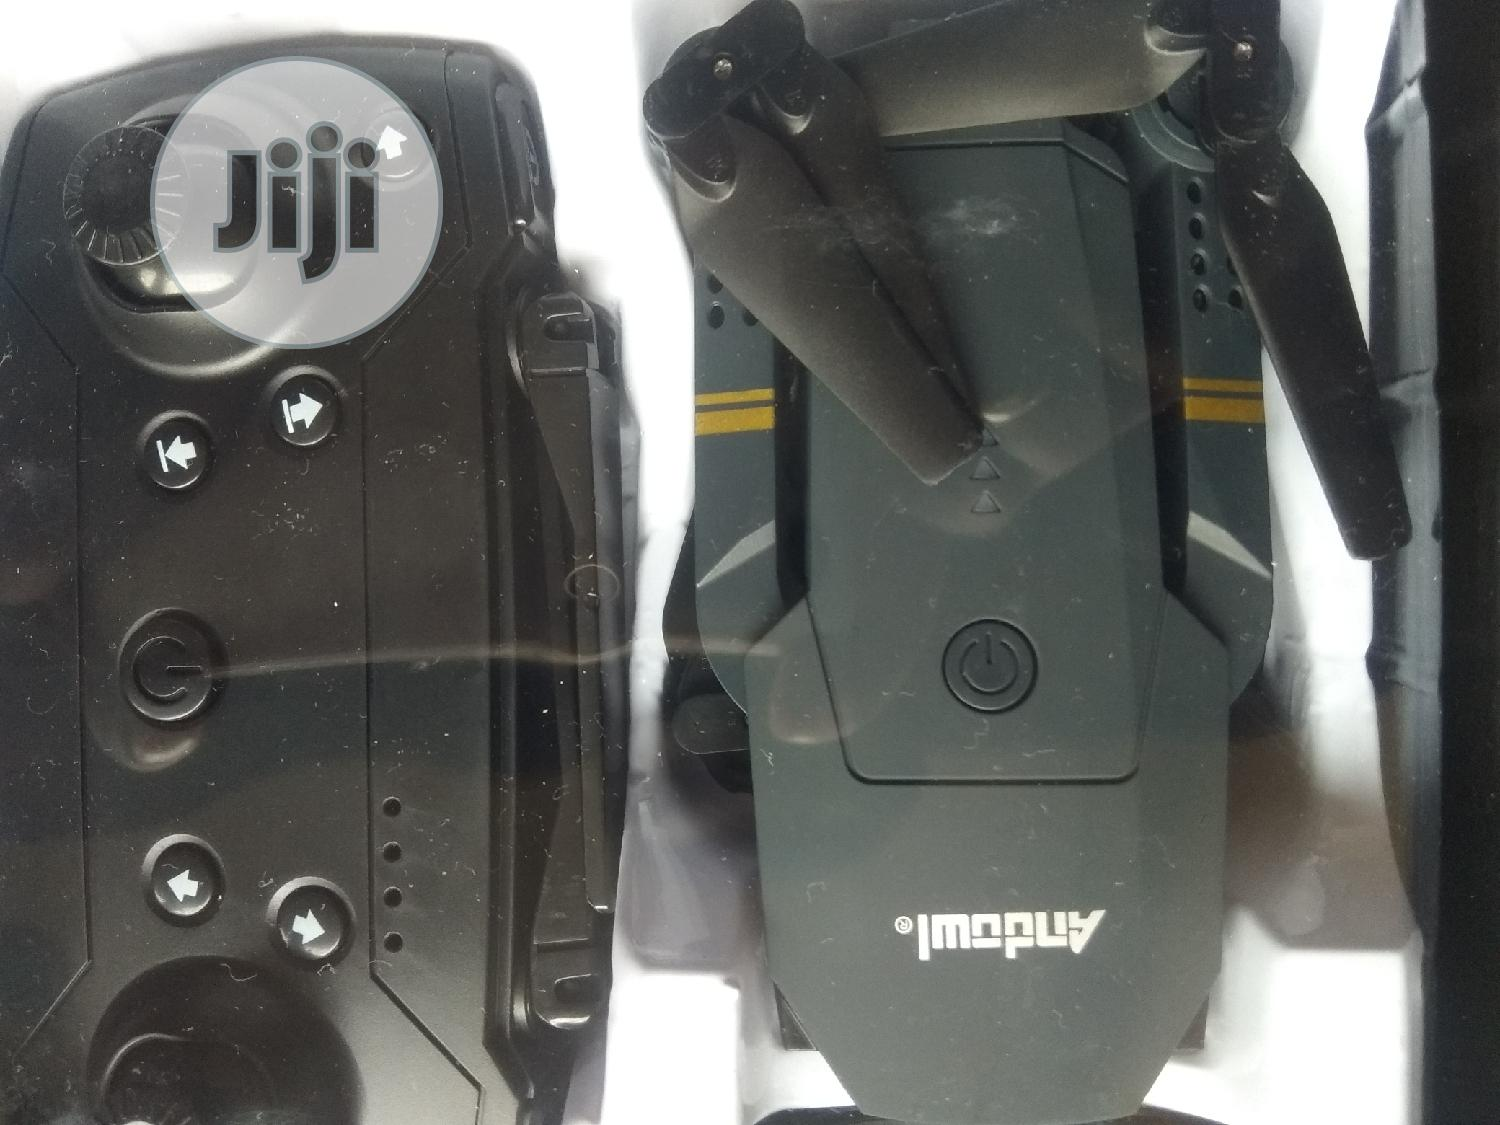 Archive: Foldable Drone